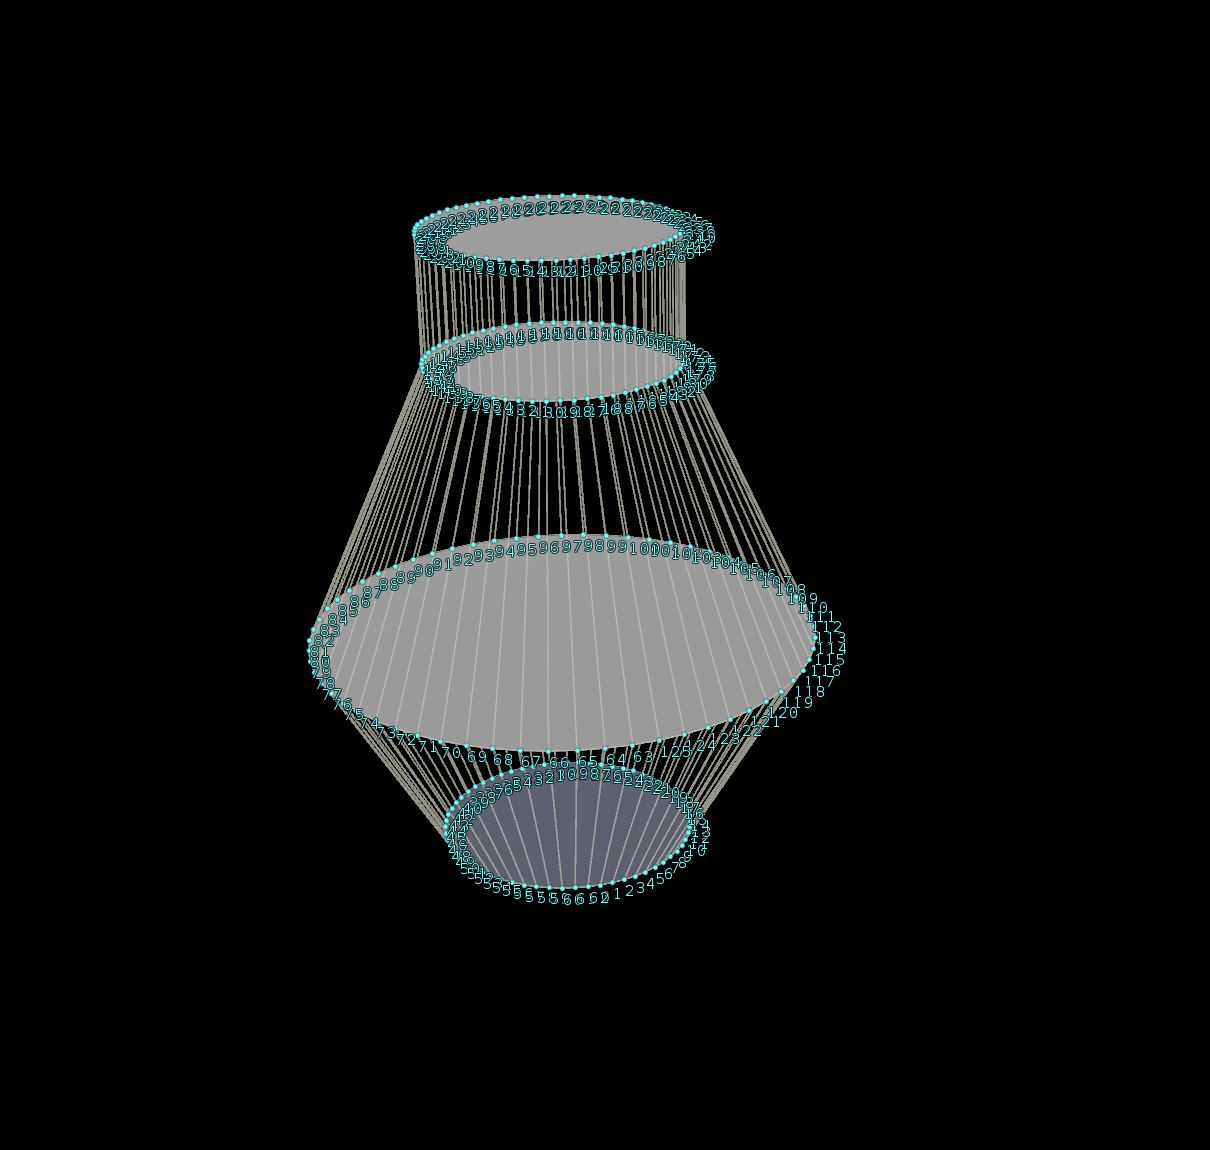 4 Circles making up the main shape of the bottle, 3D model (The first circle on the top is the 4th component, the extruded duplicate)